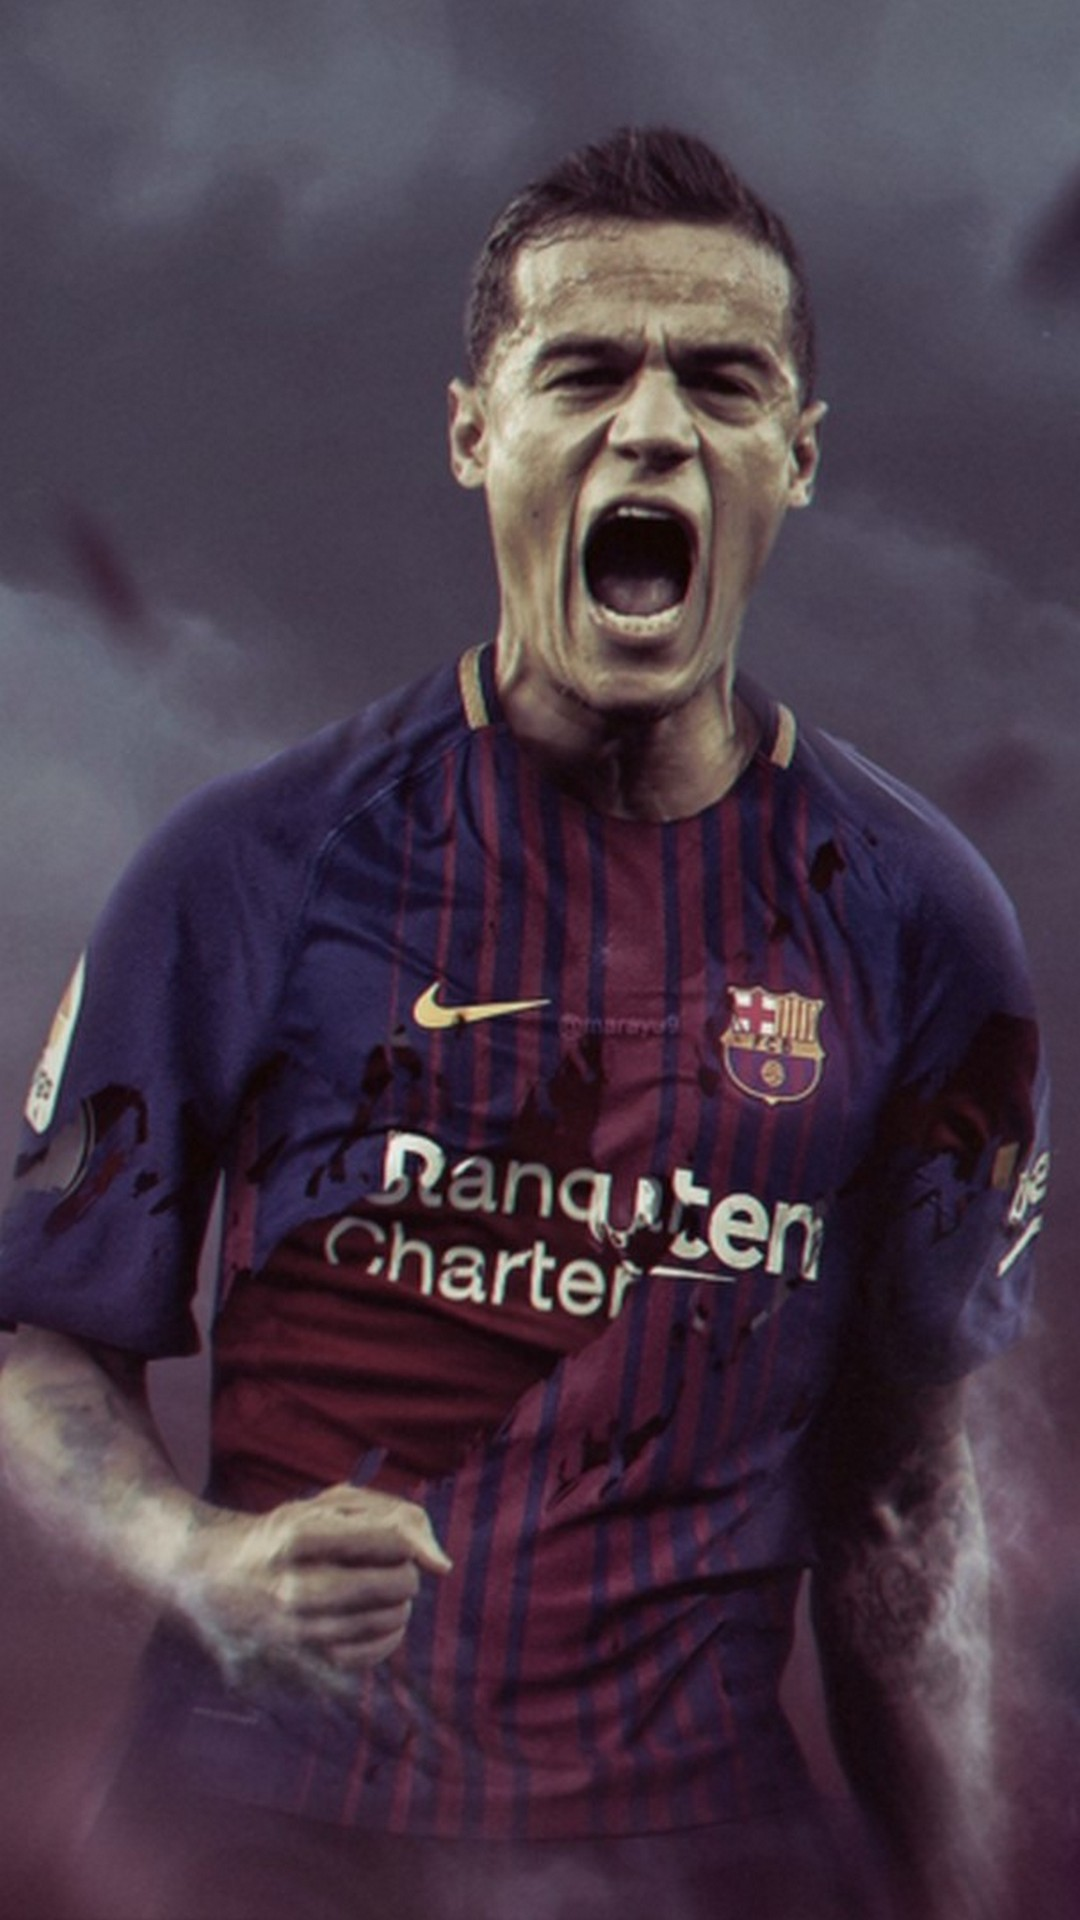 Cute Iphone Wallpaper Ideas Download Coutinho Barcelona Wallpaper For Iphone Full Size